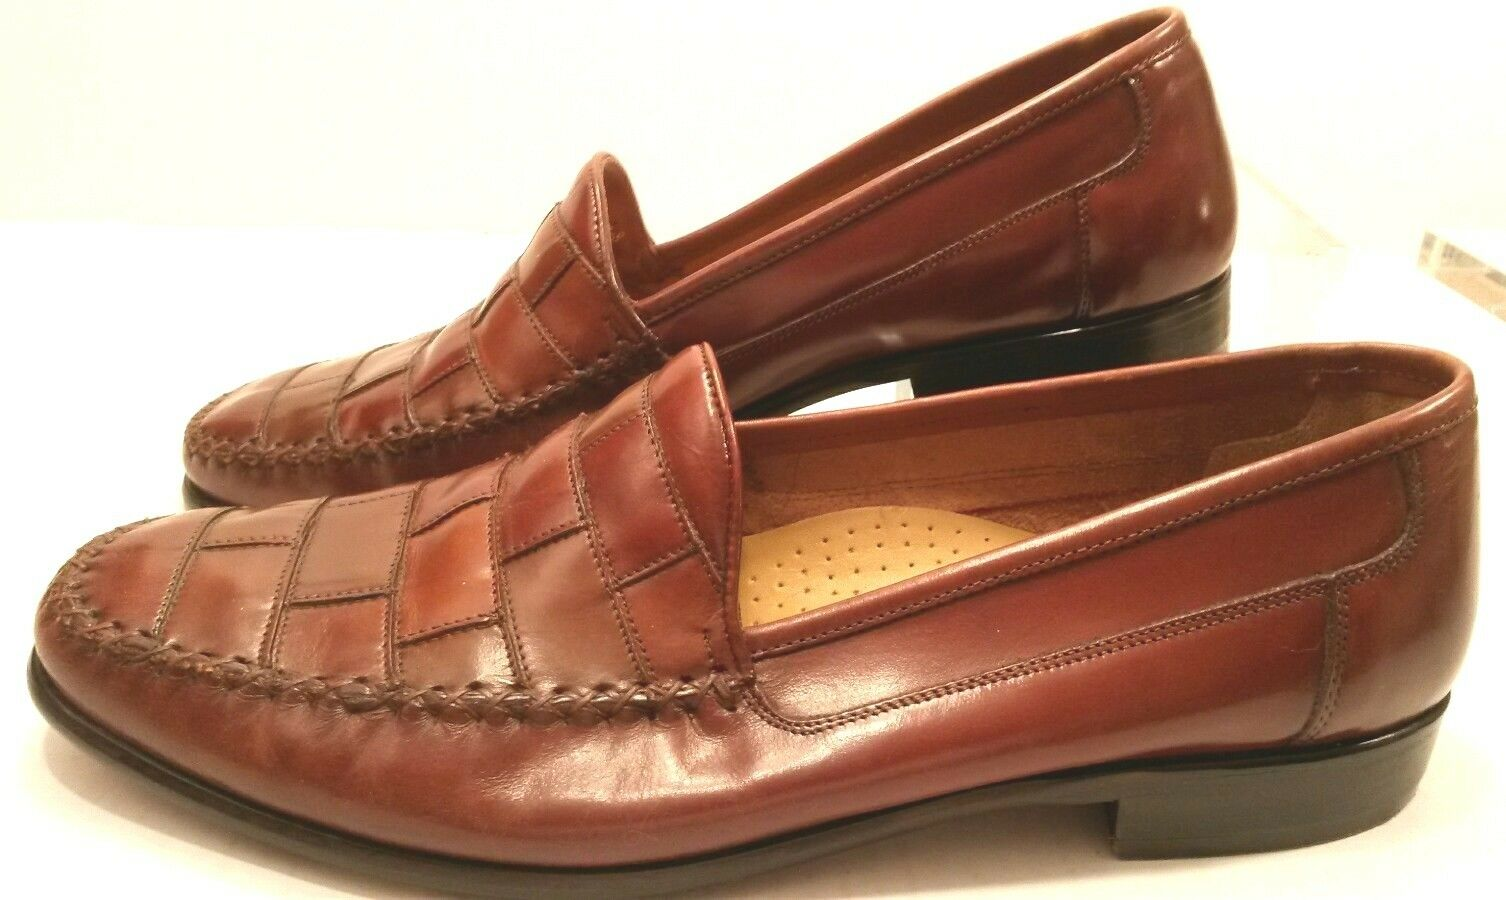 GIORGIO BRUTINI Woven SlipOn Loafer Brown Soft LEATHER Dress shoes MENS 12D MINT